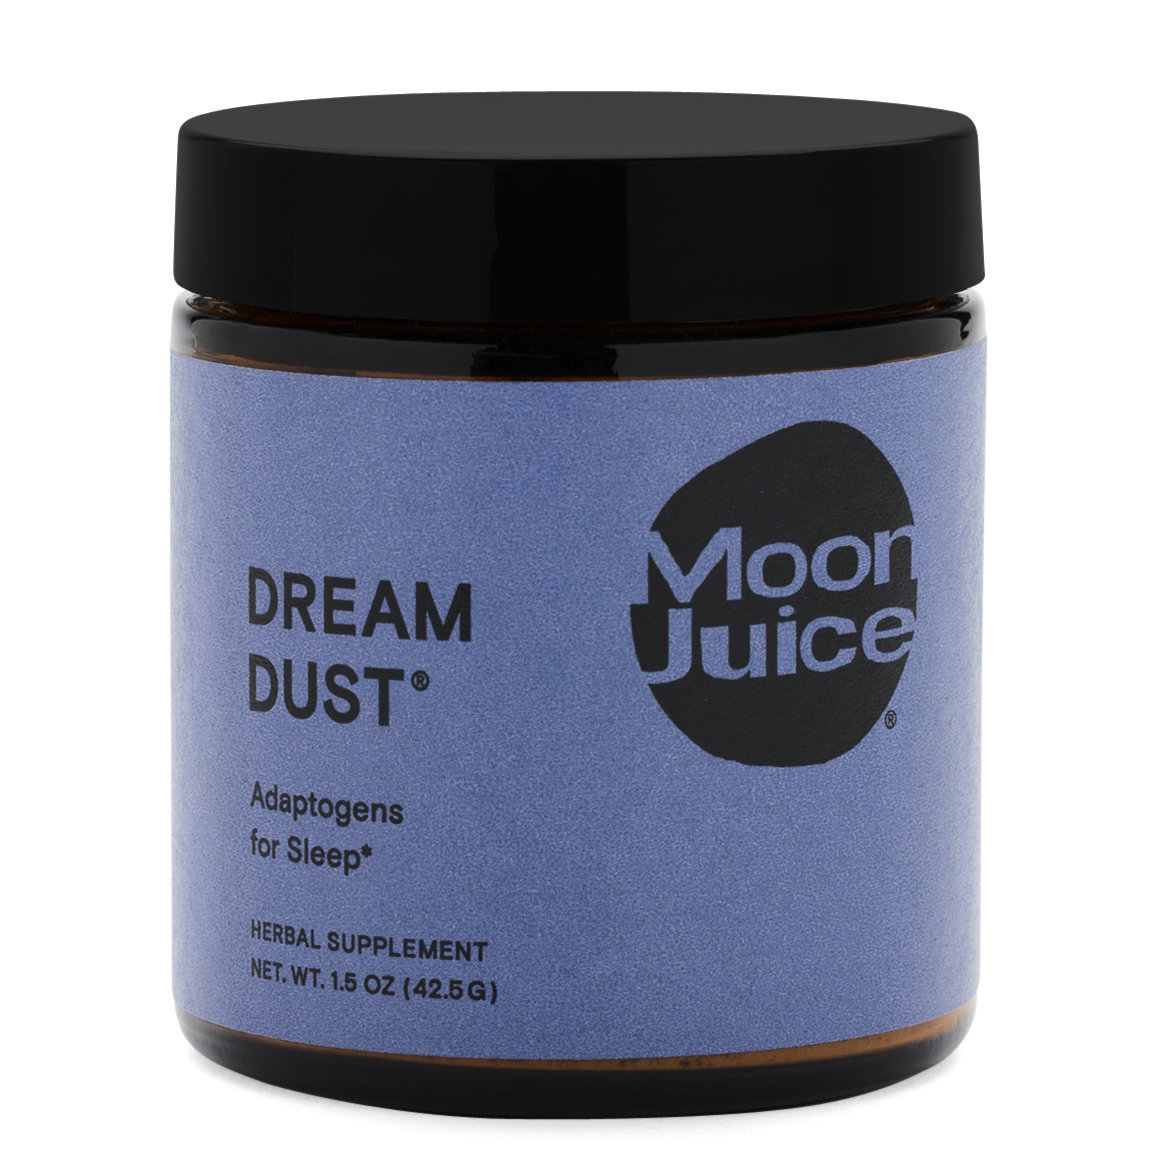 Moon Juice Dream Dust product swatch.